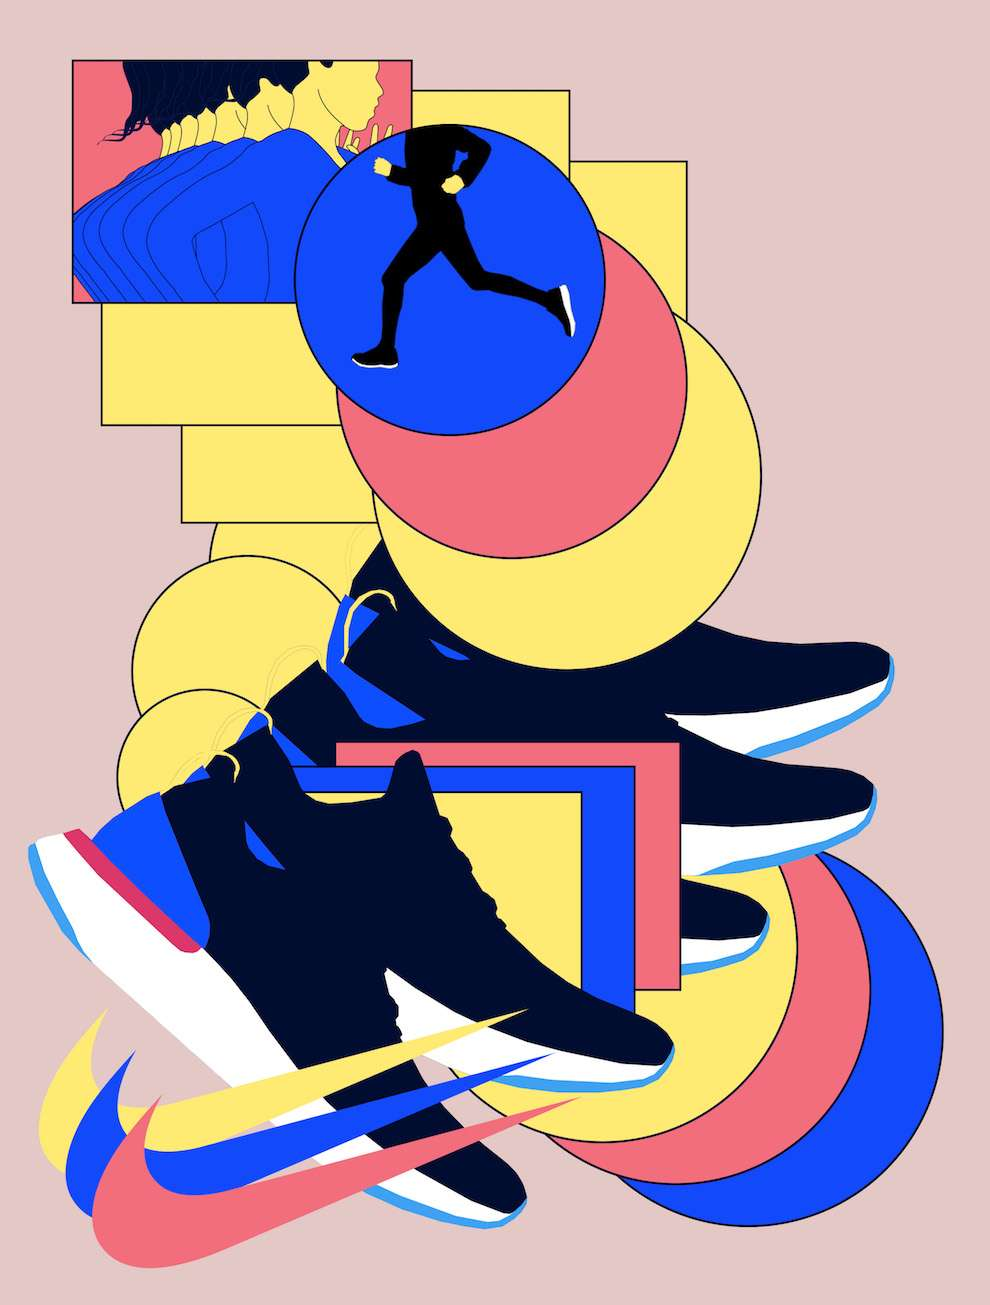 Mario Wagner, Bold, graphic and conceptual illustration of a woman runner for Nike